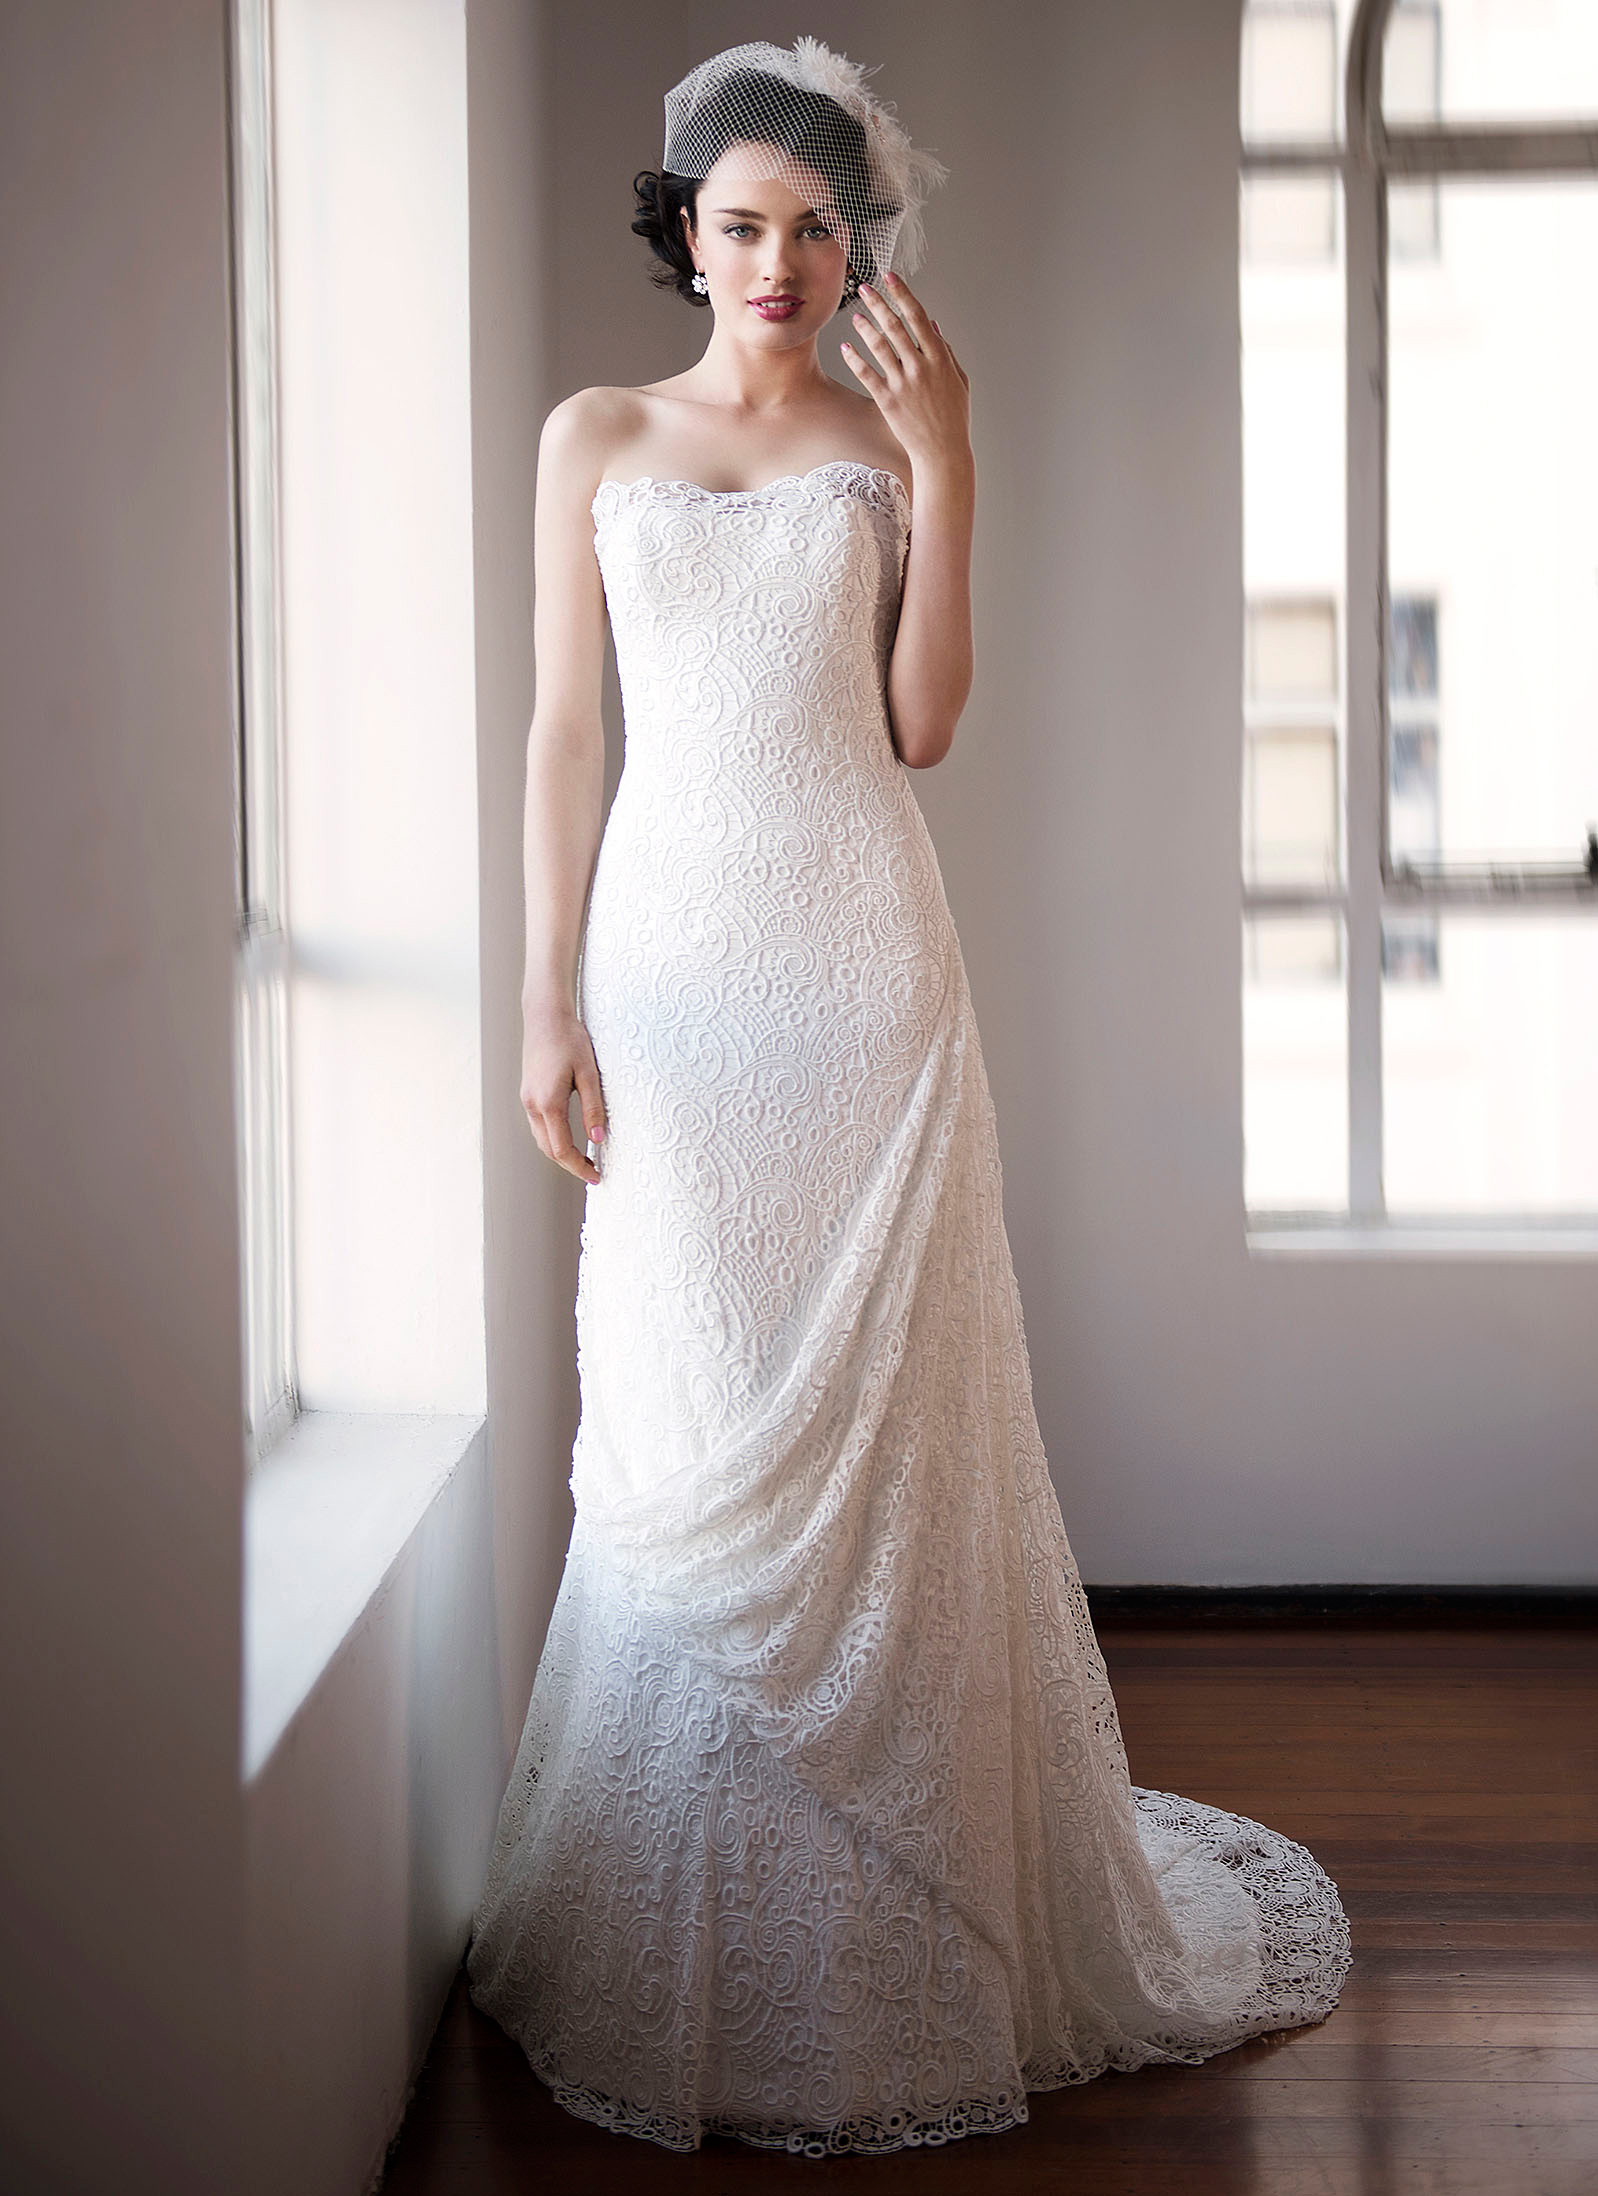 patterns wedding dresses photo - 1